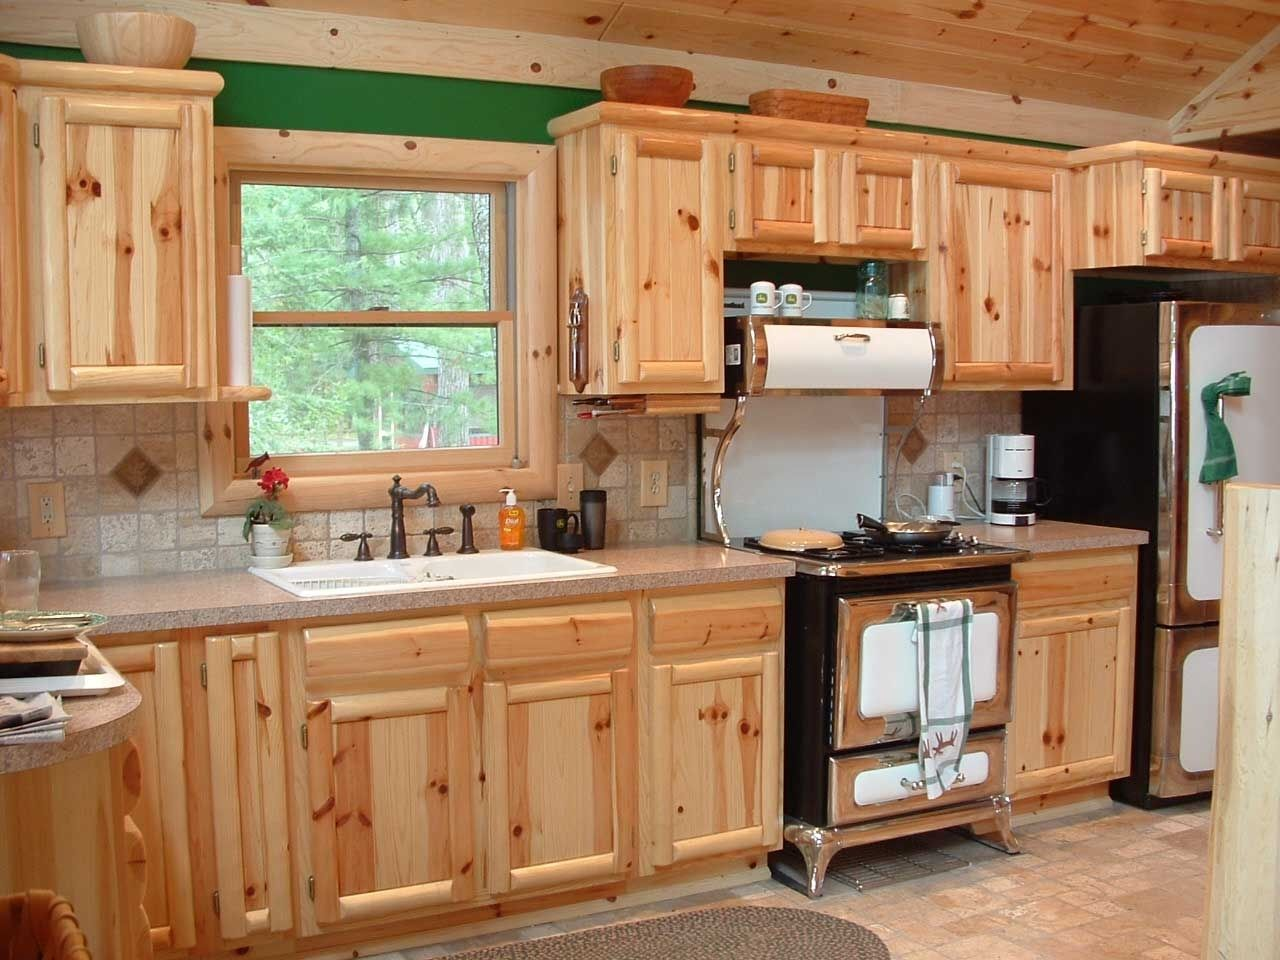 Pine Tongue And Groove Kitchen Cupboard Doors Pine Kitchen Cabinets Rustic Kitchen Cabinets Kitchen Cabinet Door Styles